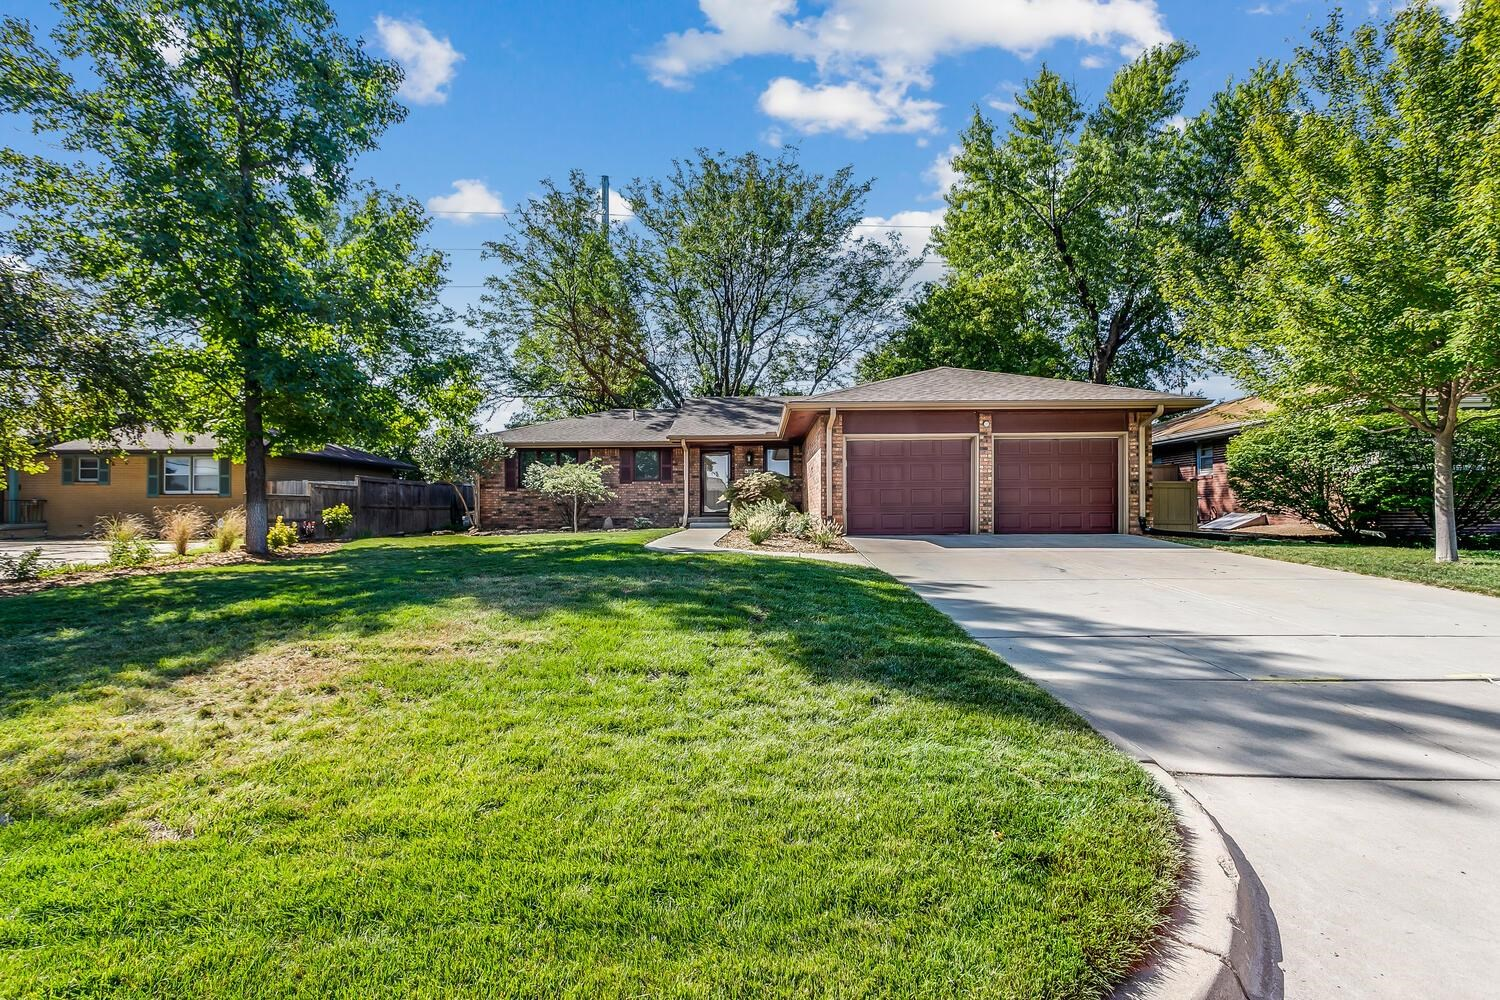 With the gorgeous backdrop of mature trees and accented by incredibly detailed landscaping, this ful